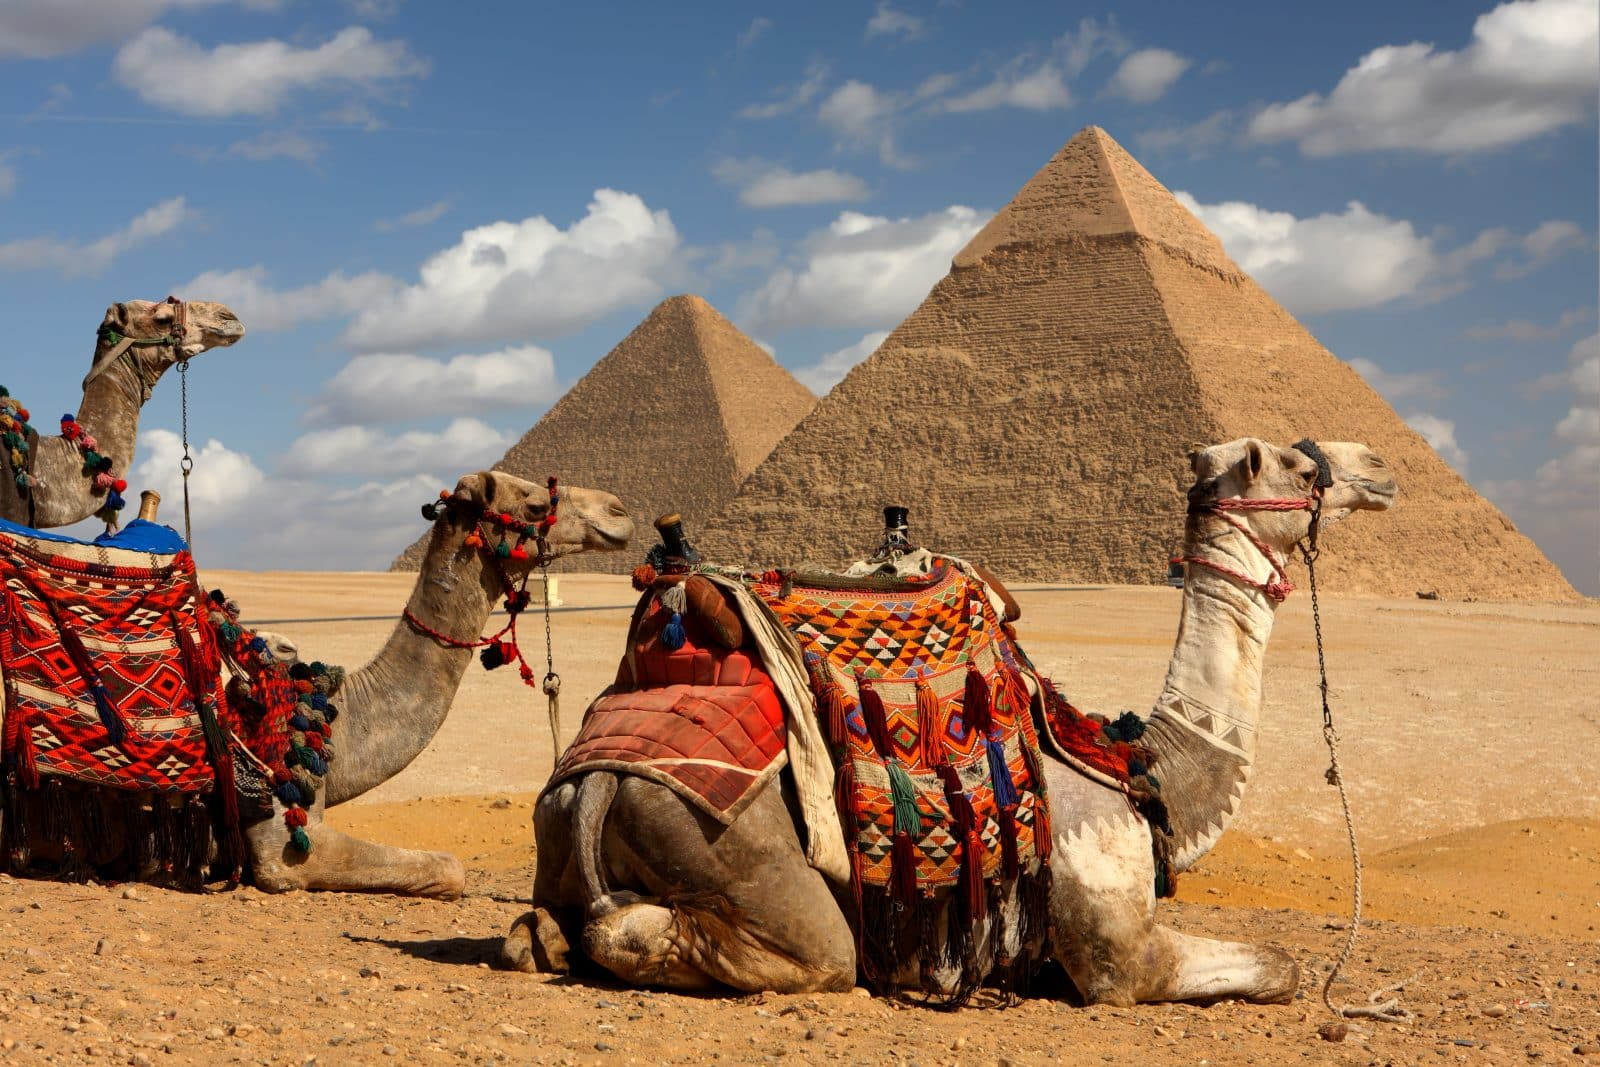 Piramides en kamelen in Egypte